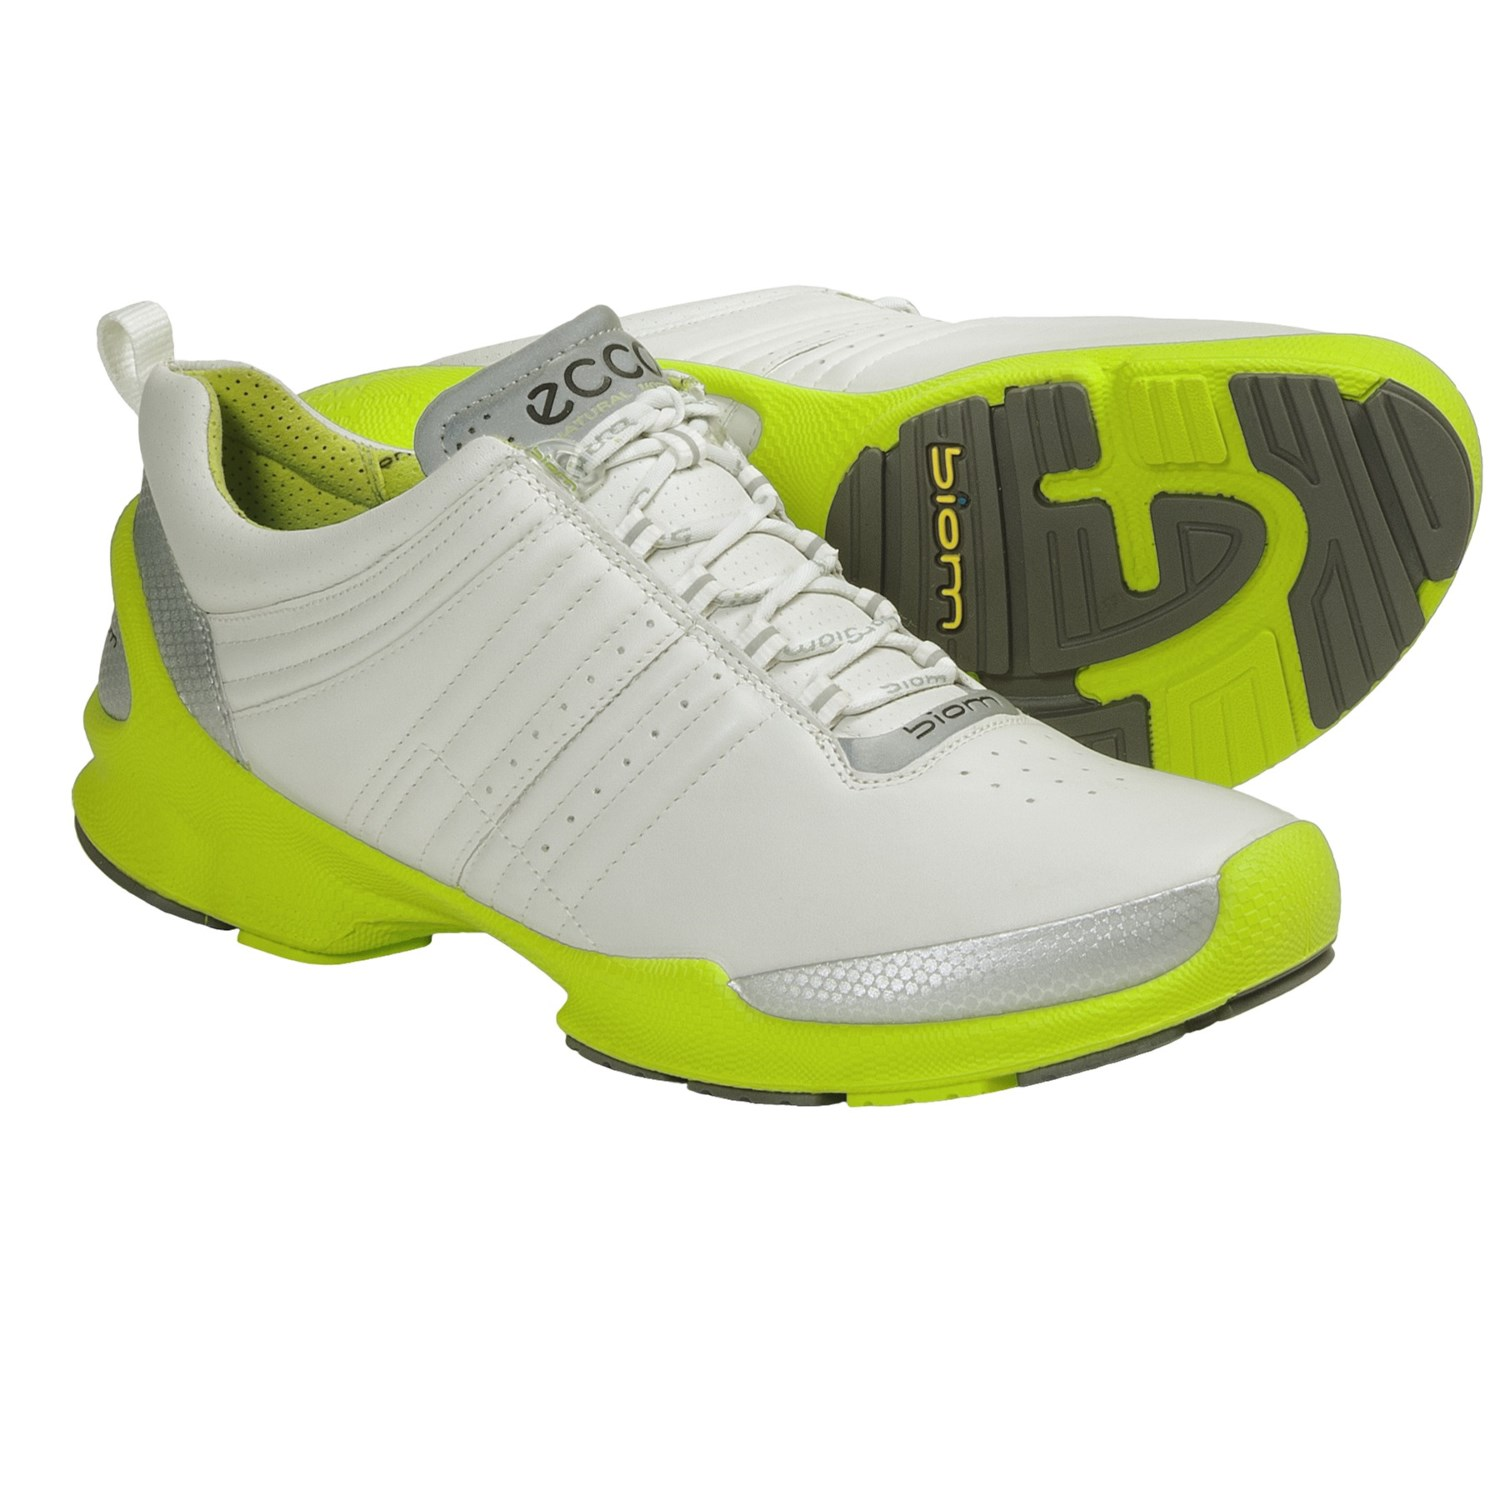 ECCO Biom Trainer Cross Training Shoes (For Men) in White/Lime Green